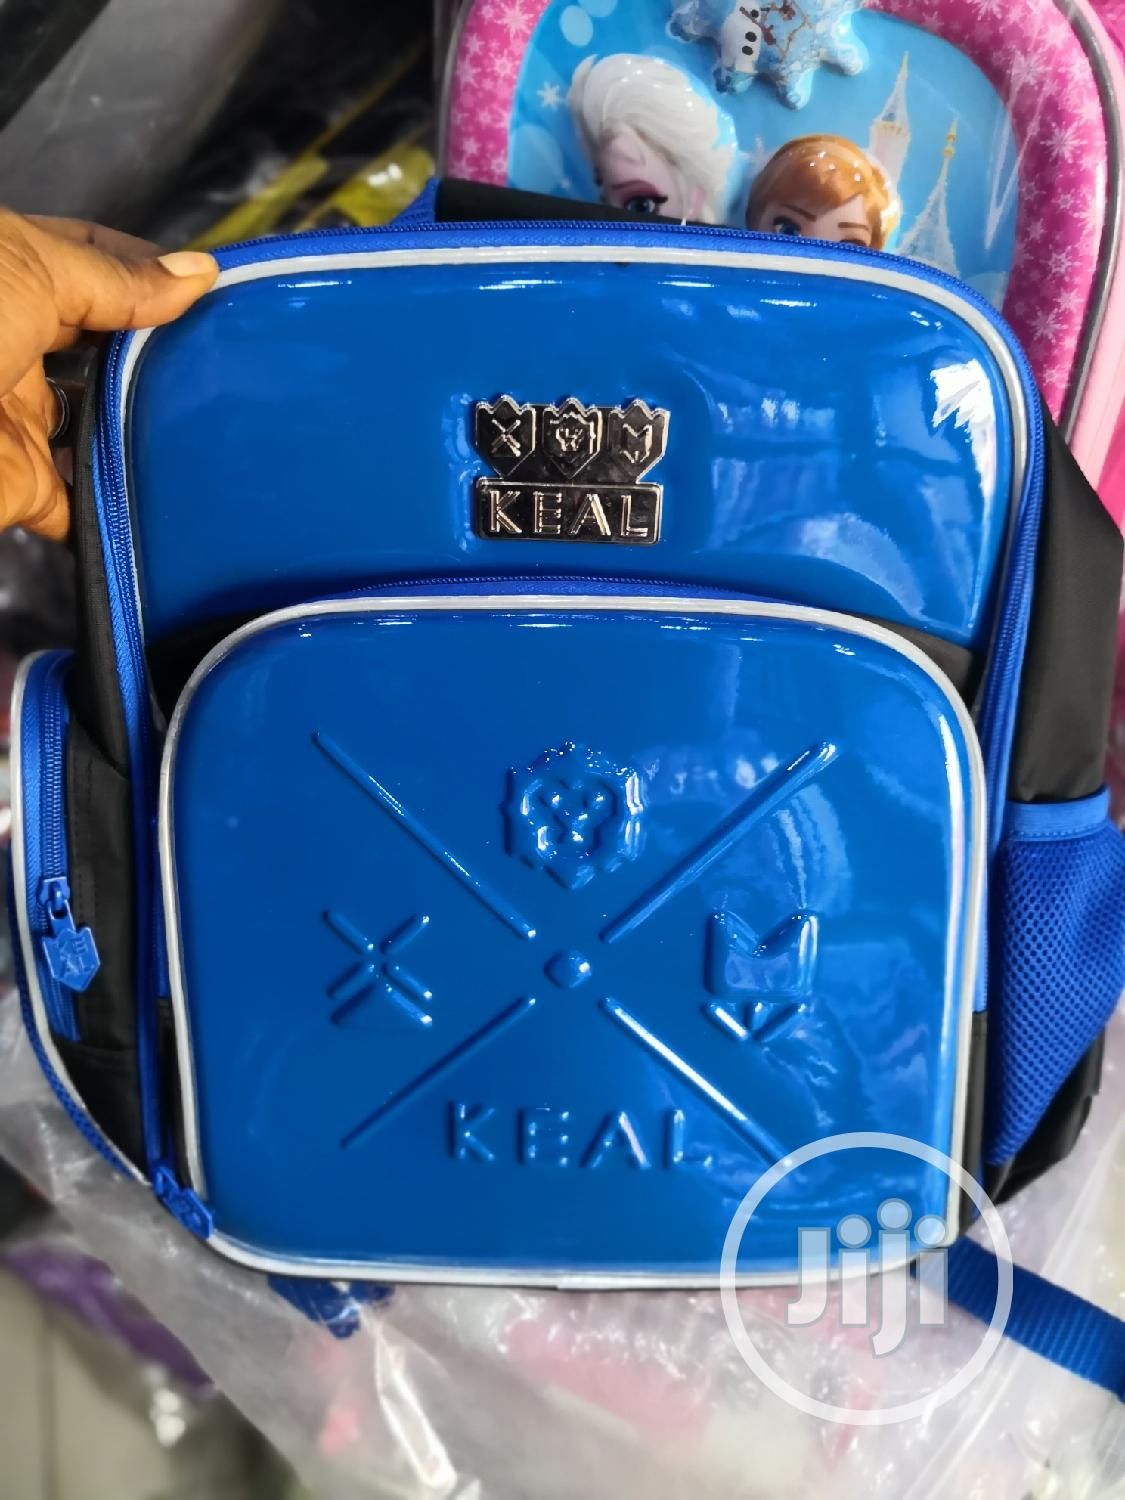 Kids Foreign Quality School Back Pack | Babies & Kids Accessories for sale in Alimosho, Lagos State, Nigeria